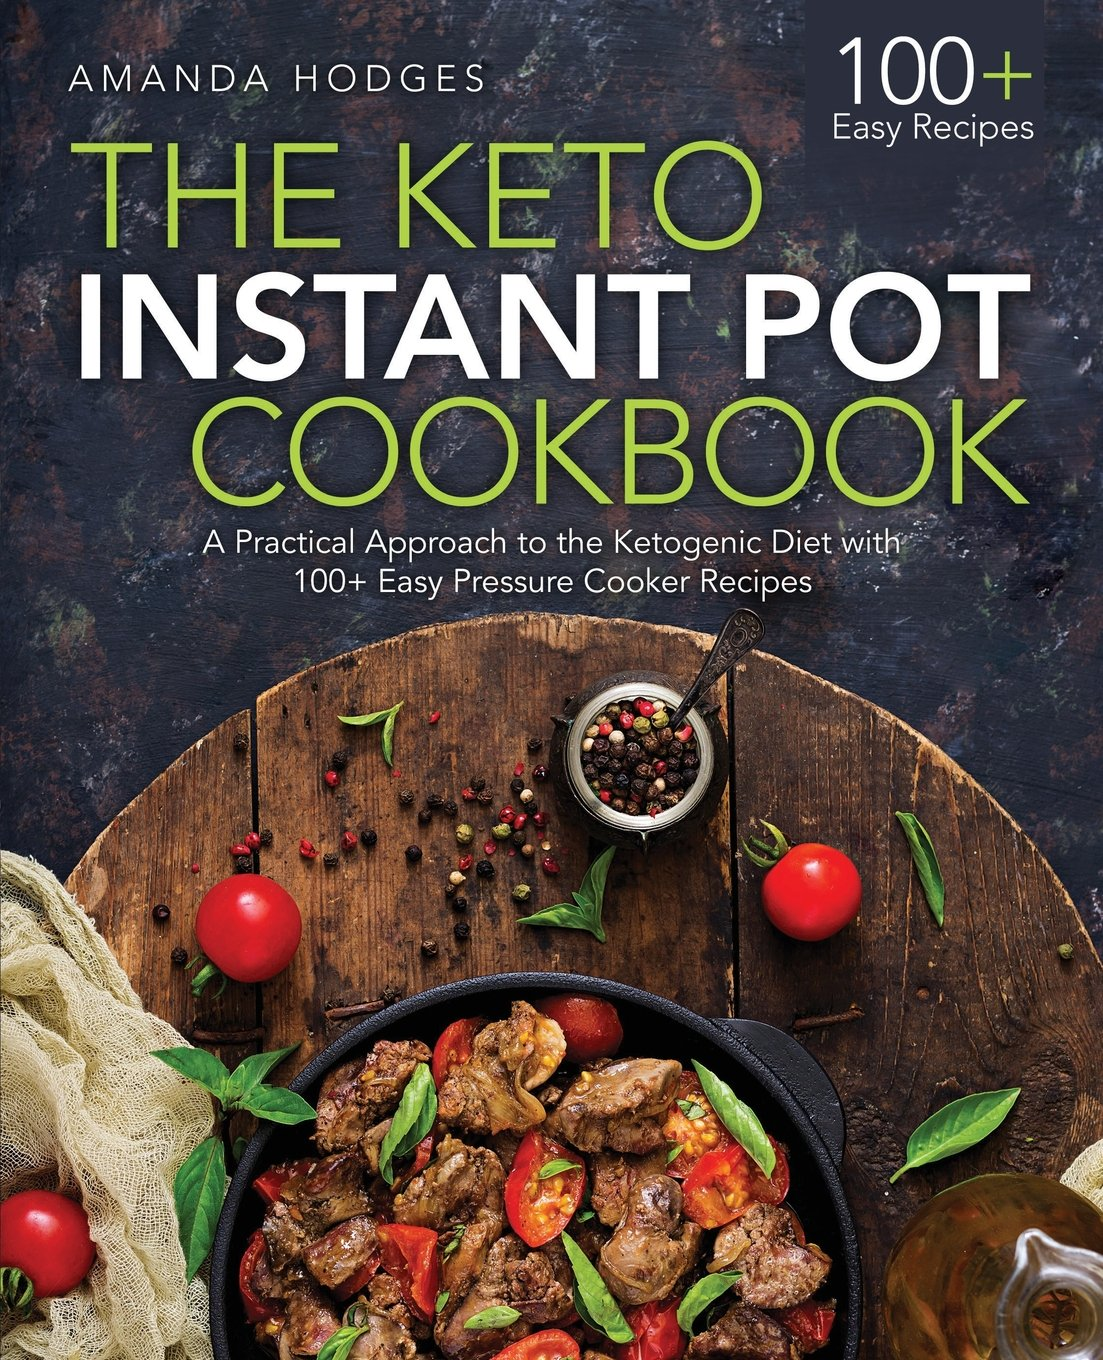 Download The Keto Instant Pot Cookbook: A Practical Approach to the Ketogenic Diet with 100+ Easy Pressure Cooker Recipes ebook